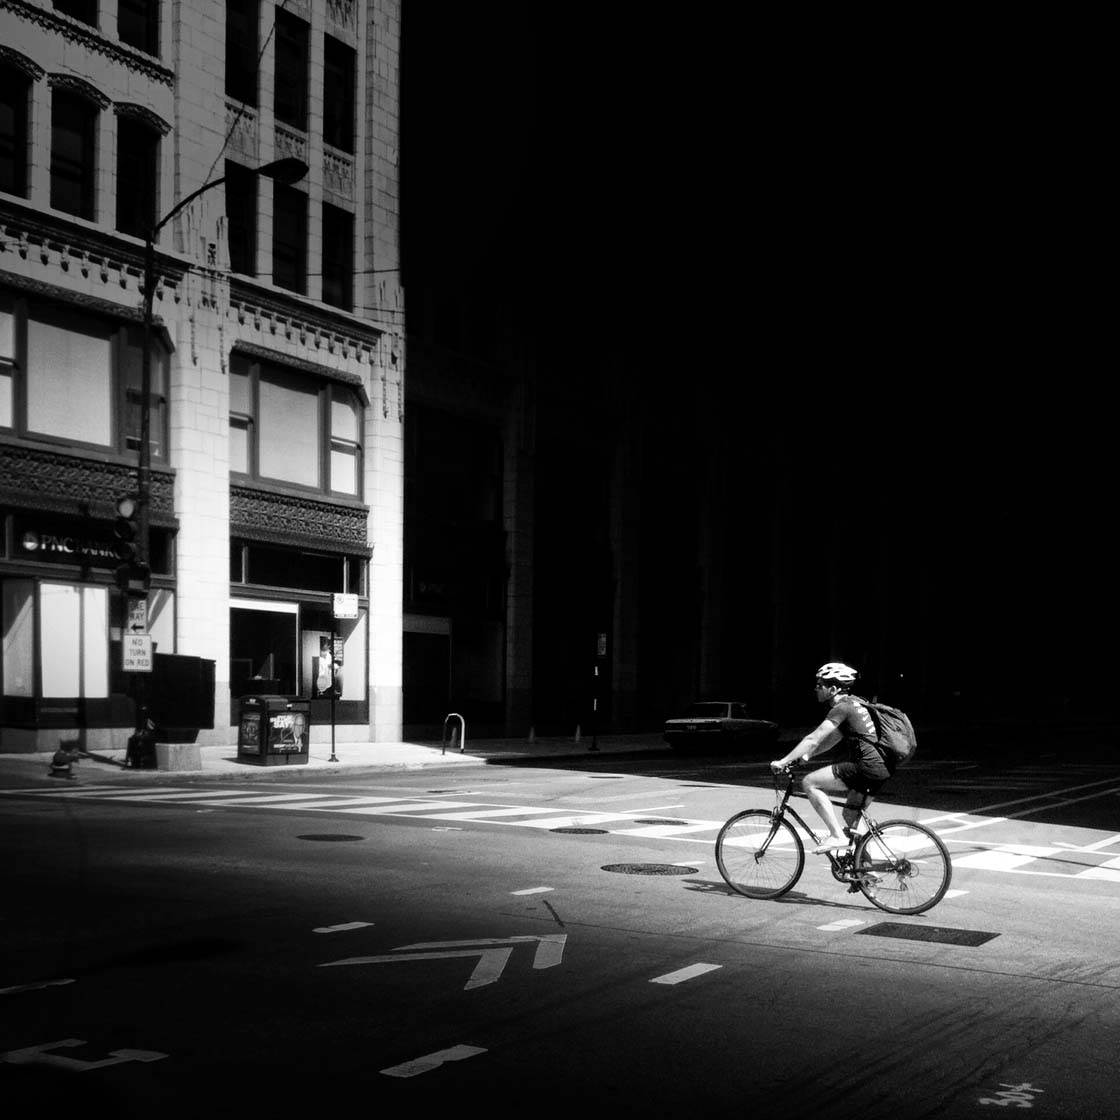 iPhone Street Photography Tips 10 no script